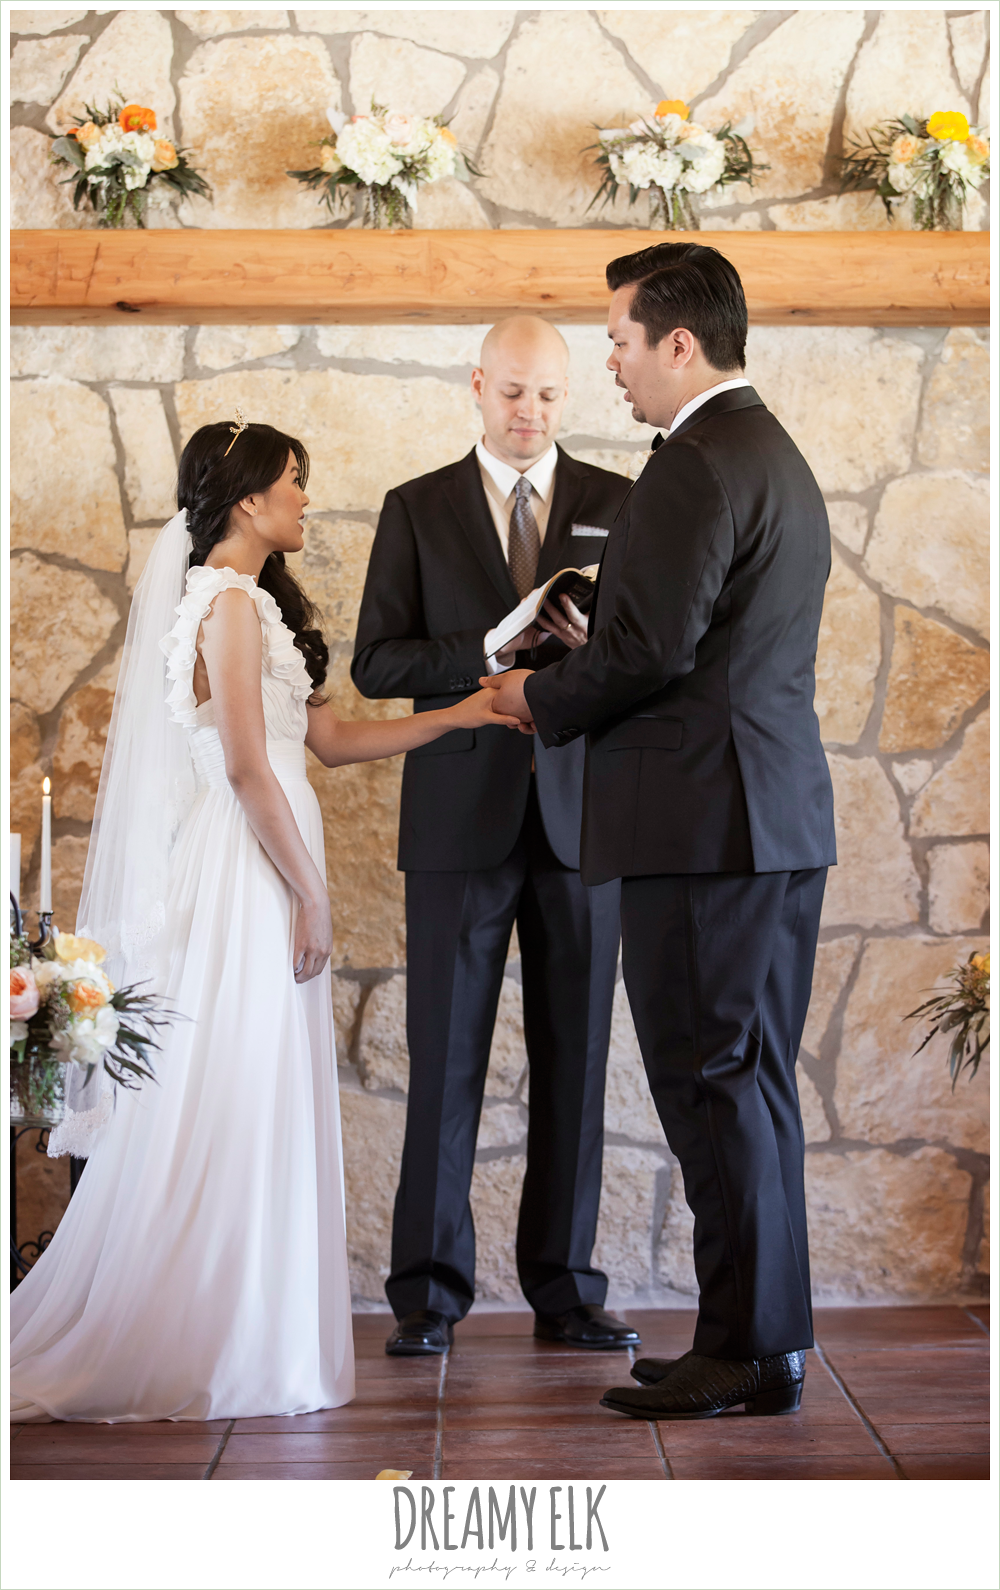 wedding ceremony, la hacienda, dripping springs, texas {dreamy elk photography and design} photo